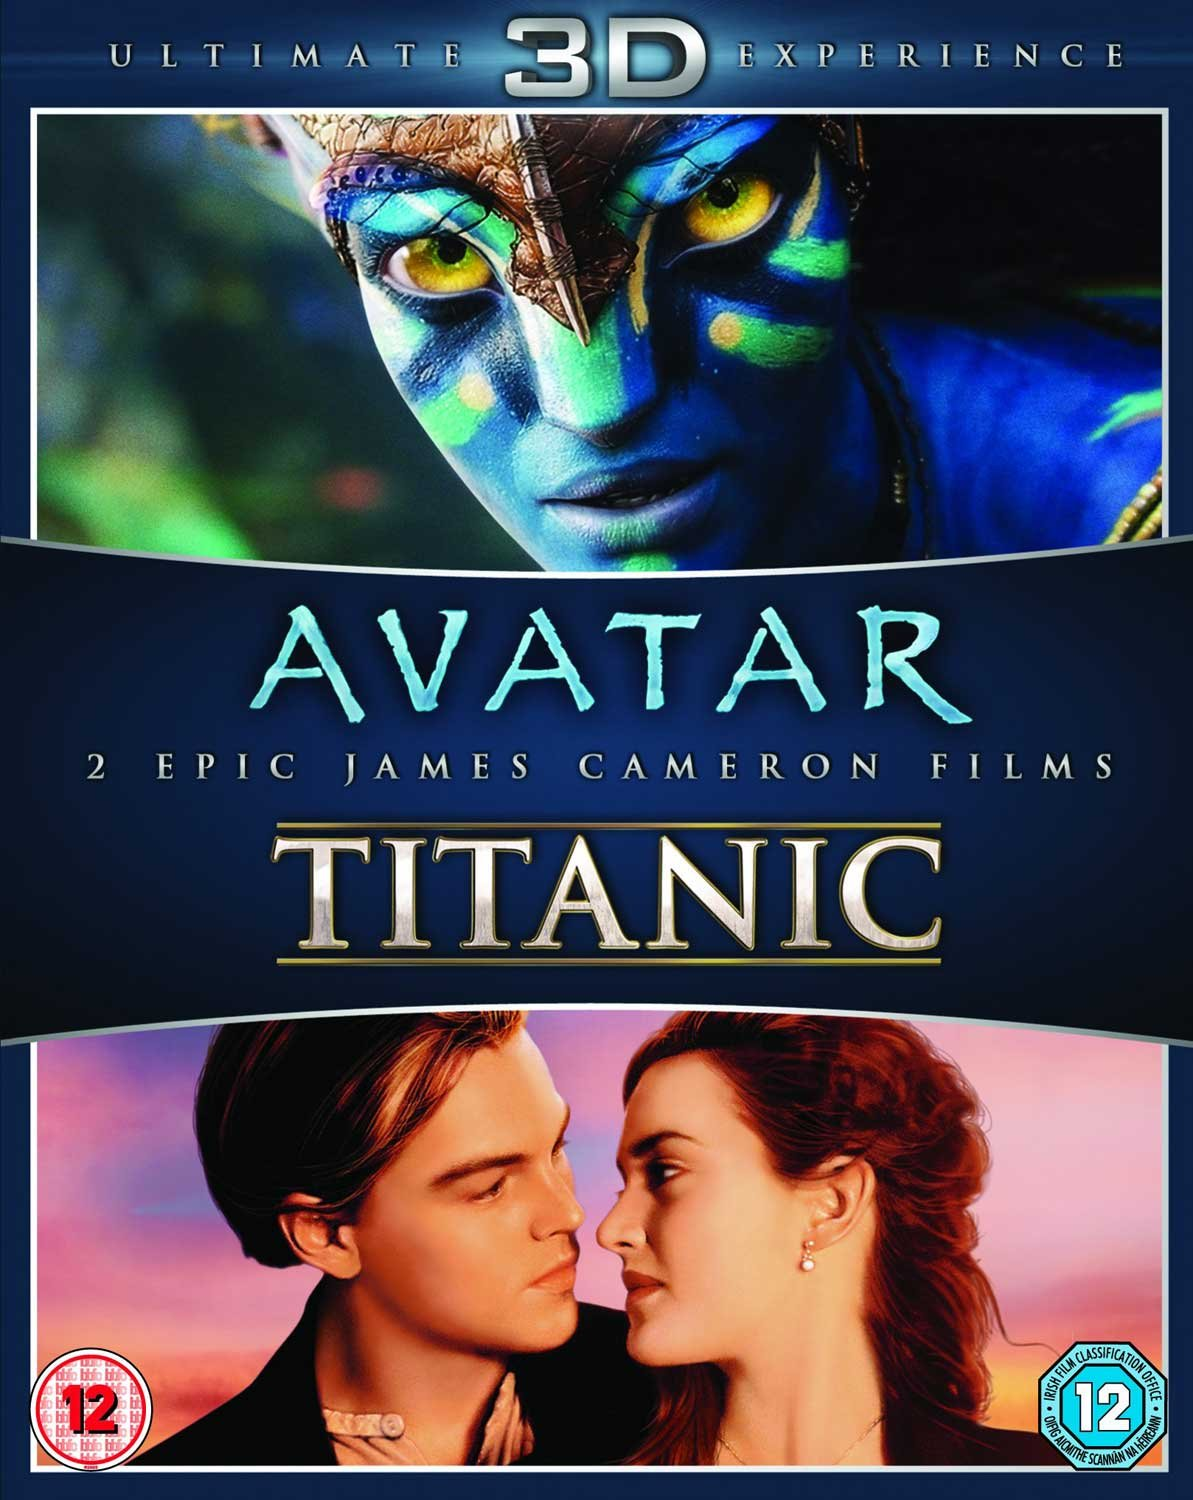 amazon com avatar titanic blu ray d blu ray region  amazon com avatar titanic blu ray 3d blu ray region uk import kate winslet leonardo dicapreo james cameron movies tv